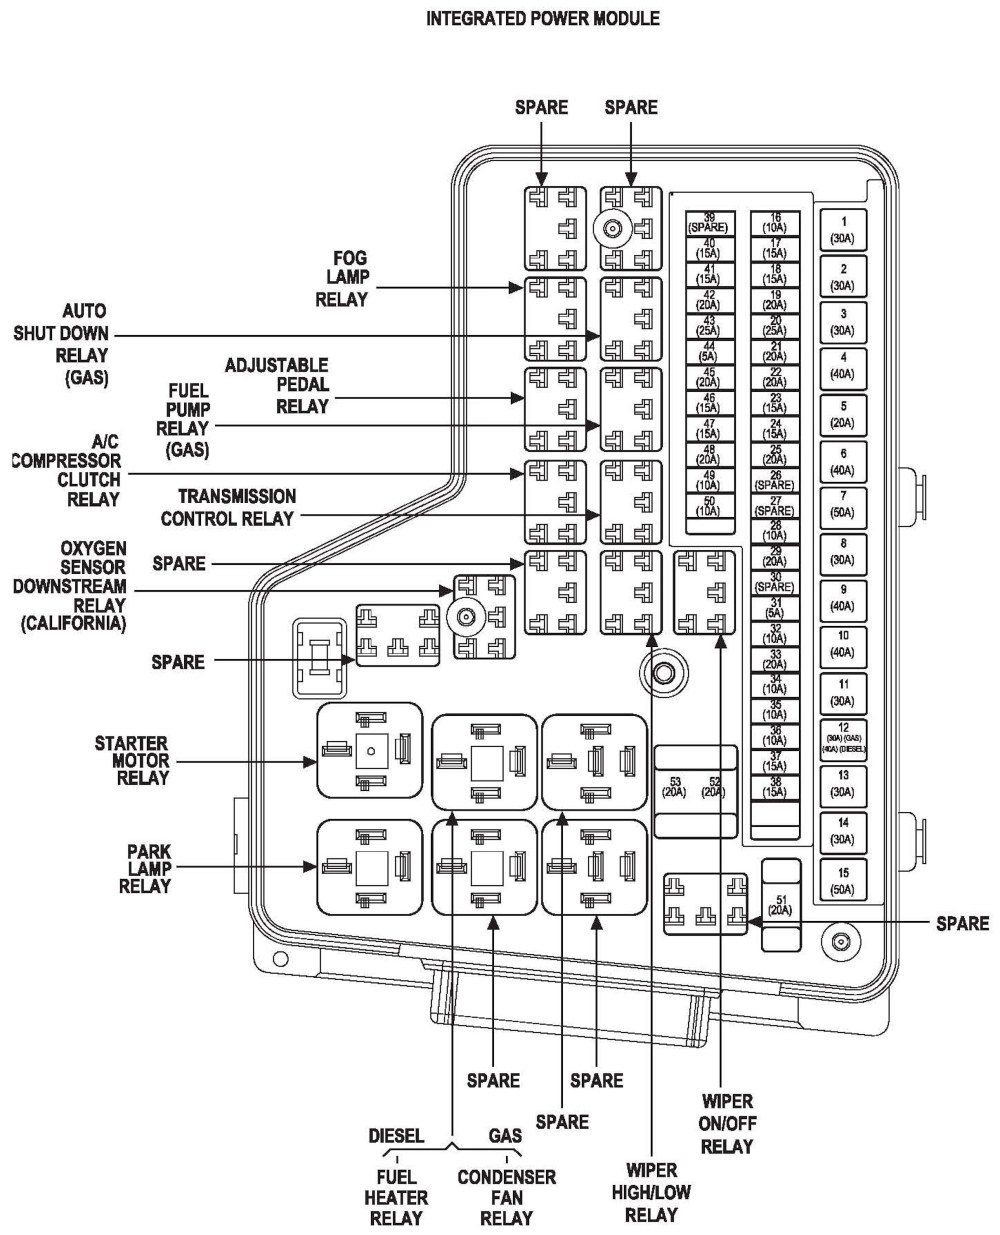 medium resolution of 2012 dodge ram 3500 fuse box wiring diagram new2012 ram 3500 fuse box free downloads wiring